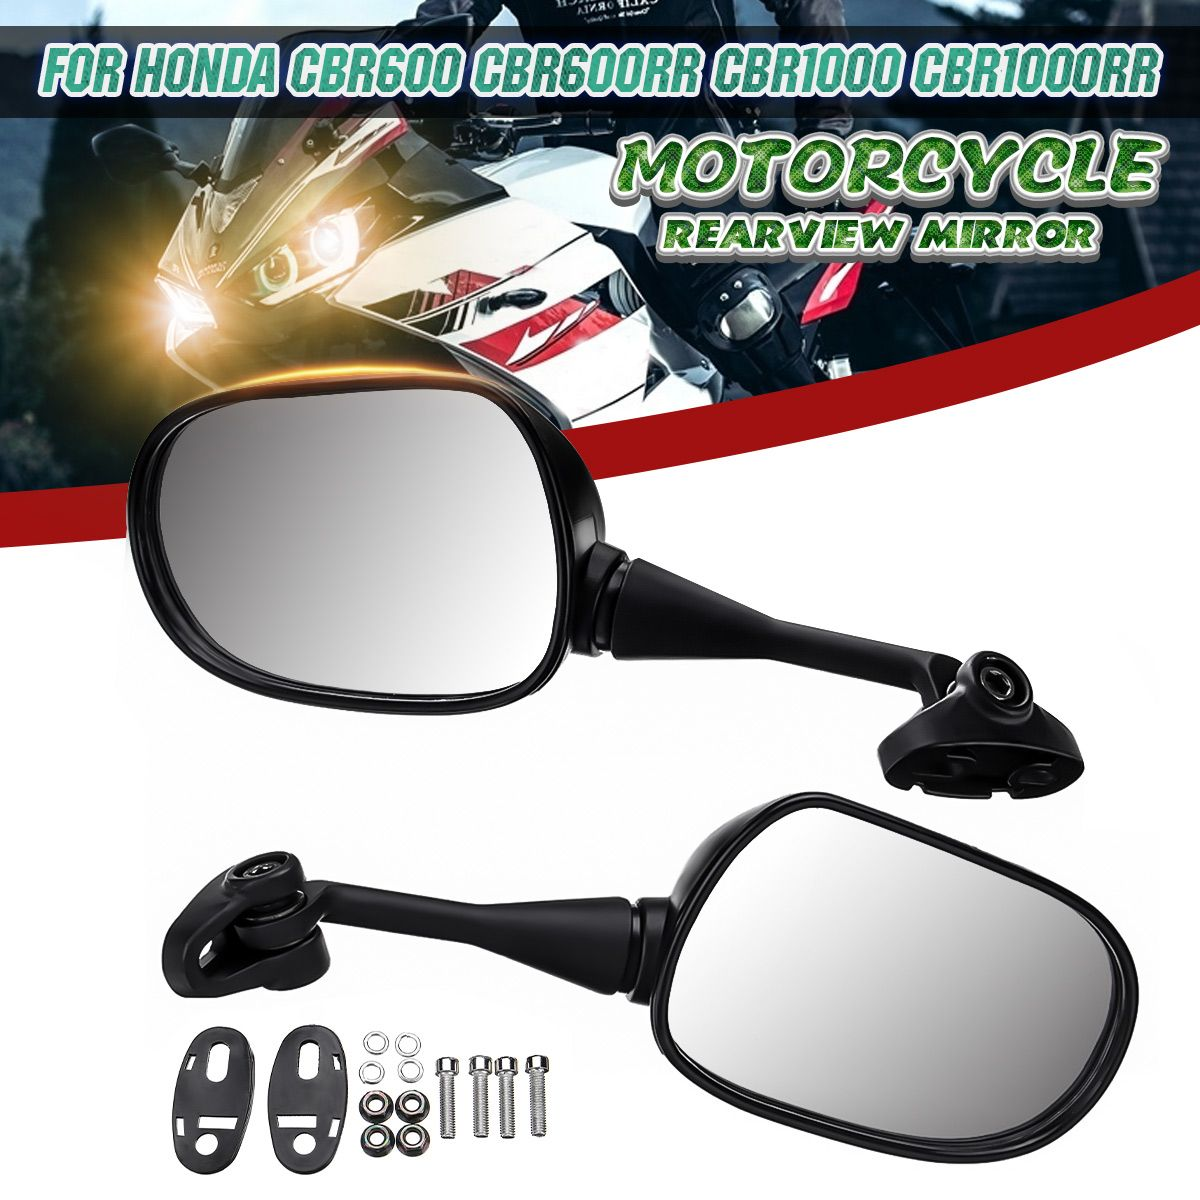 Motorcycle Rearview Mirrors for Honda CBR600RR 2003-2018 /& CBR1000RR 2004-2008